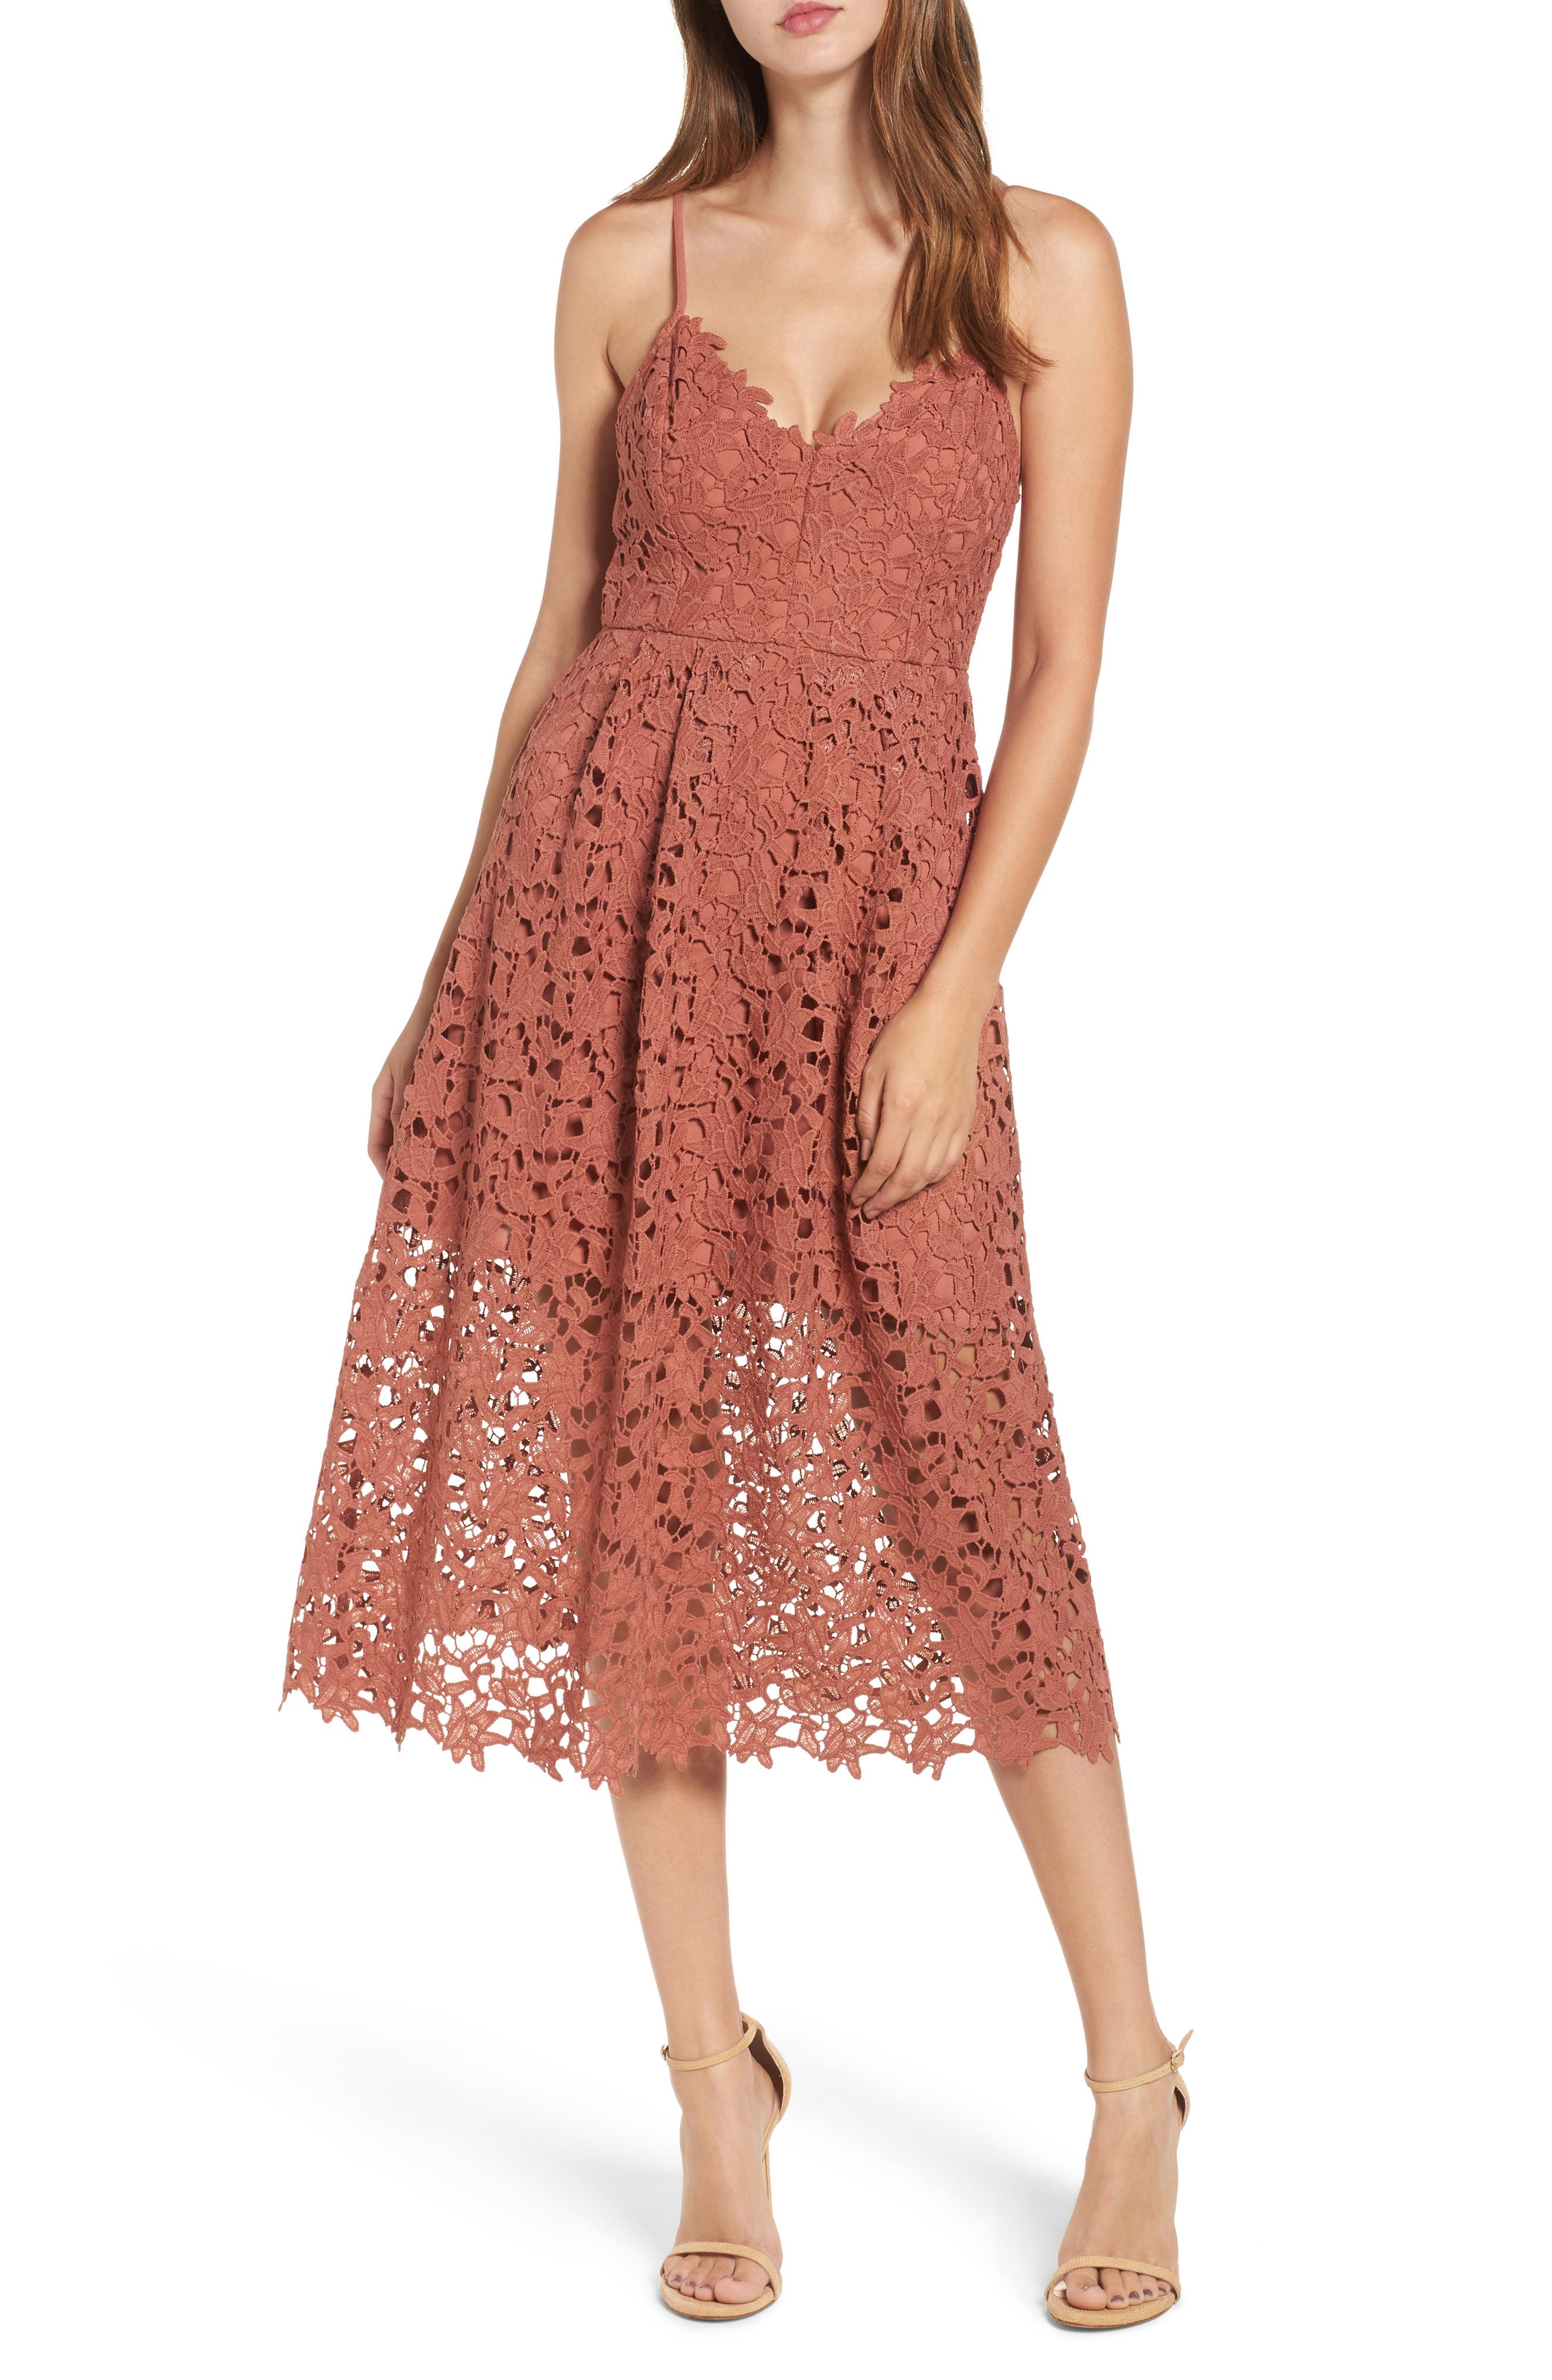 Main Image - ASTR the Label Lace Midi Dress